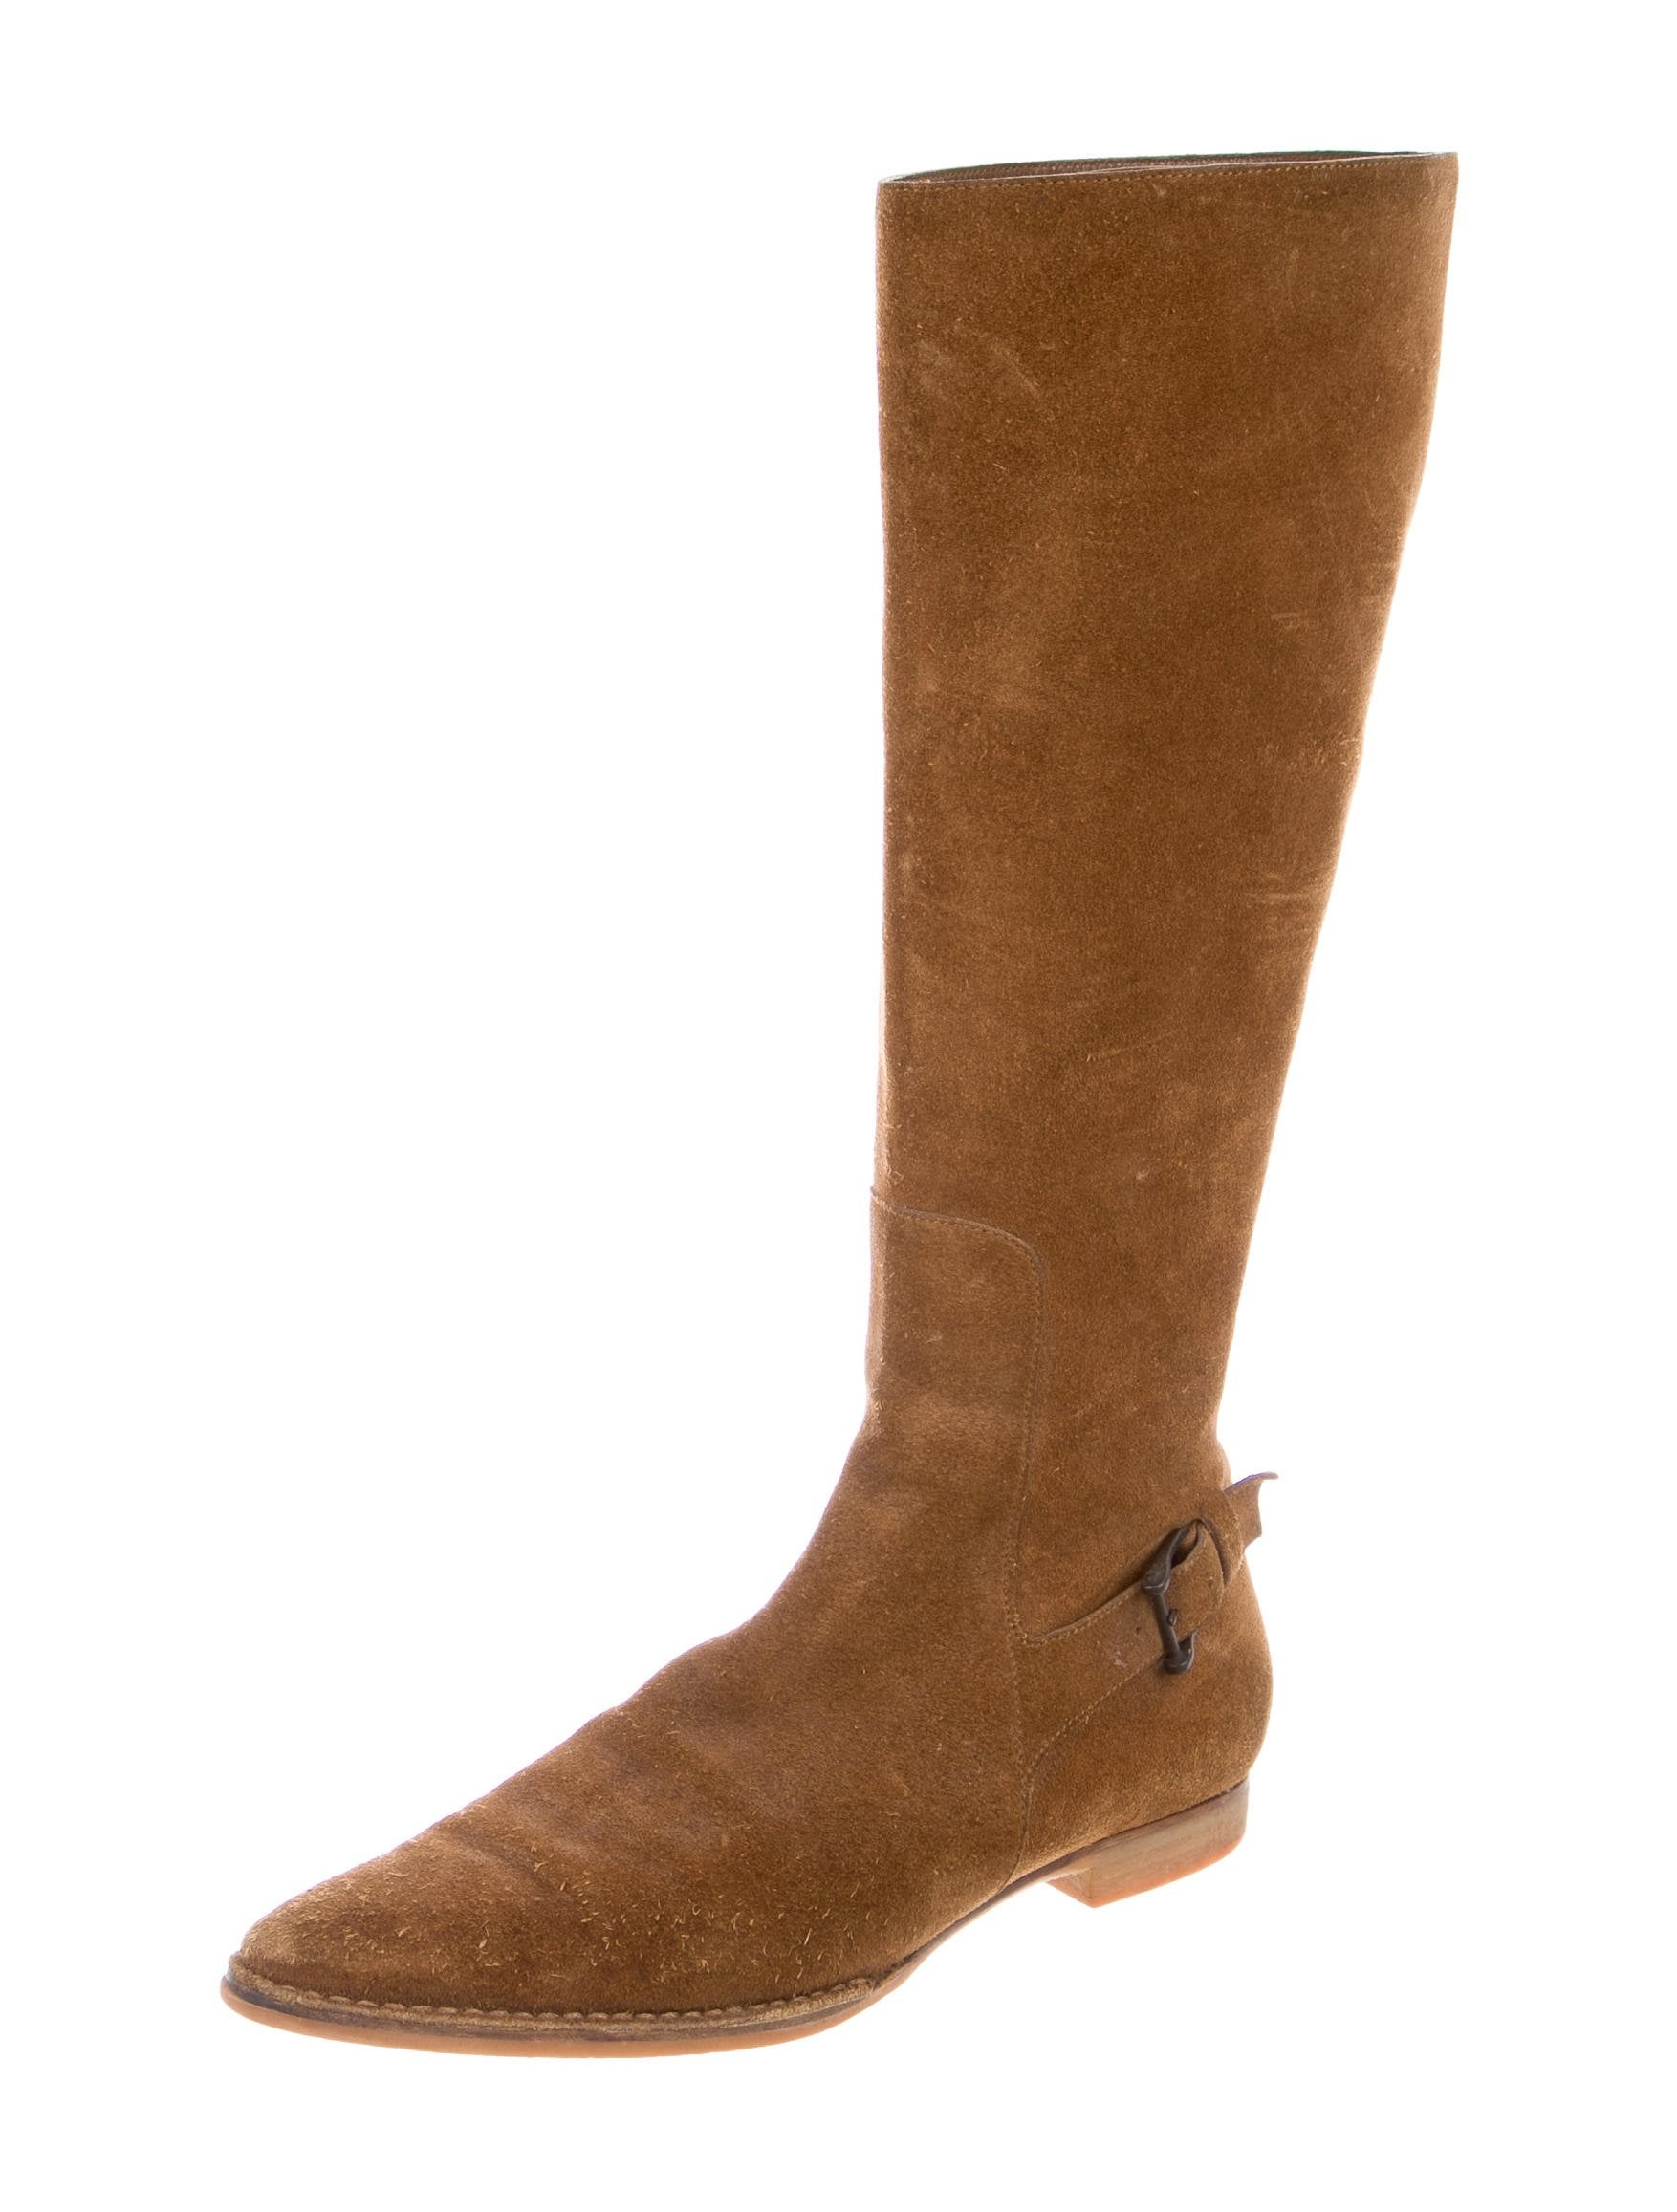 gucci suede knee high boots shoes guc158885 the realreal